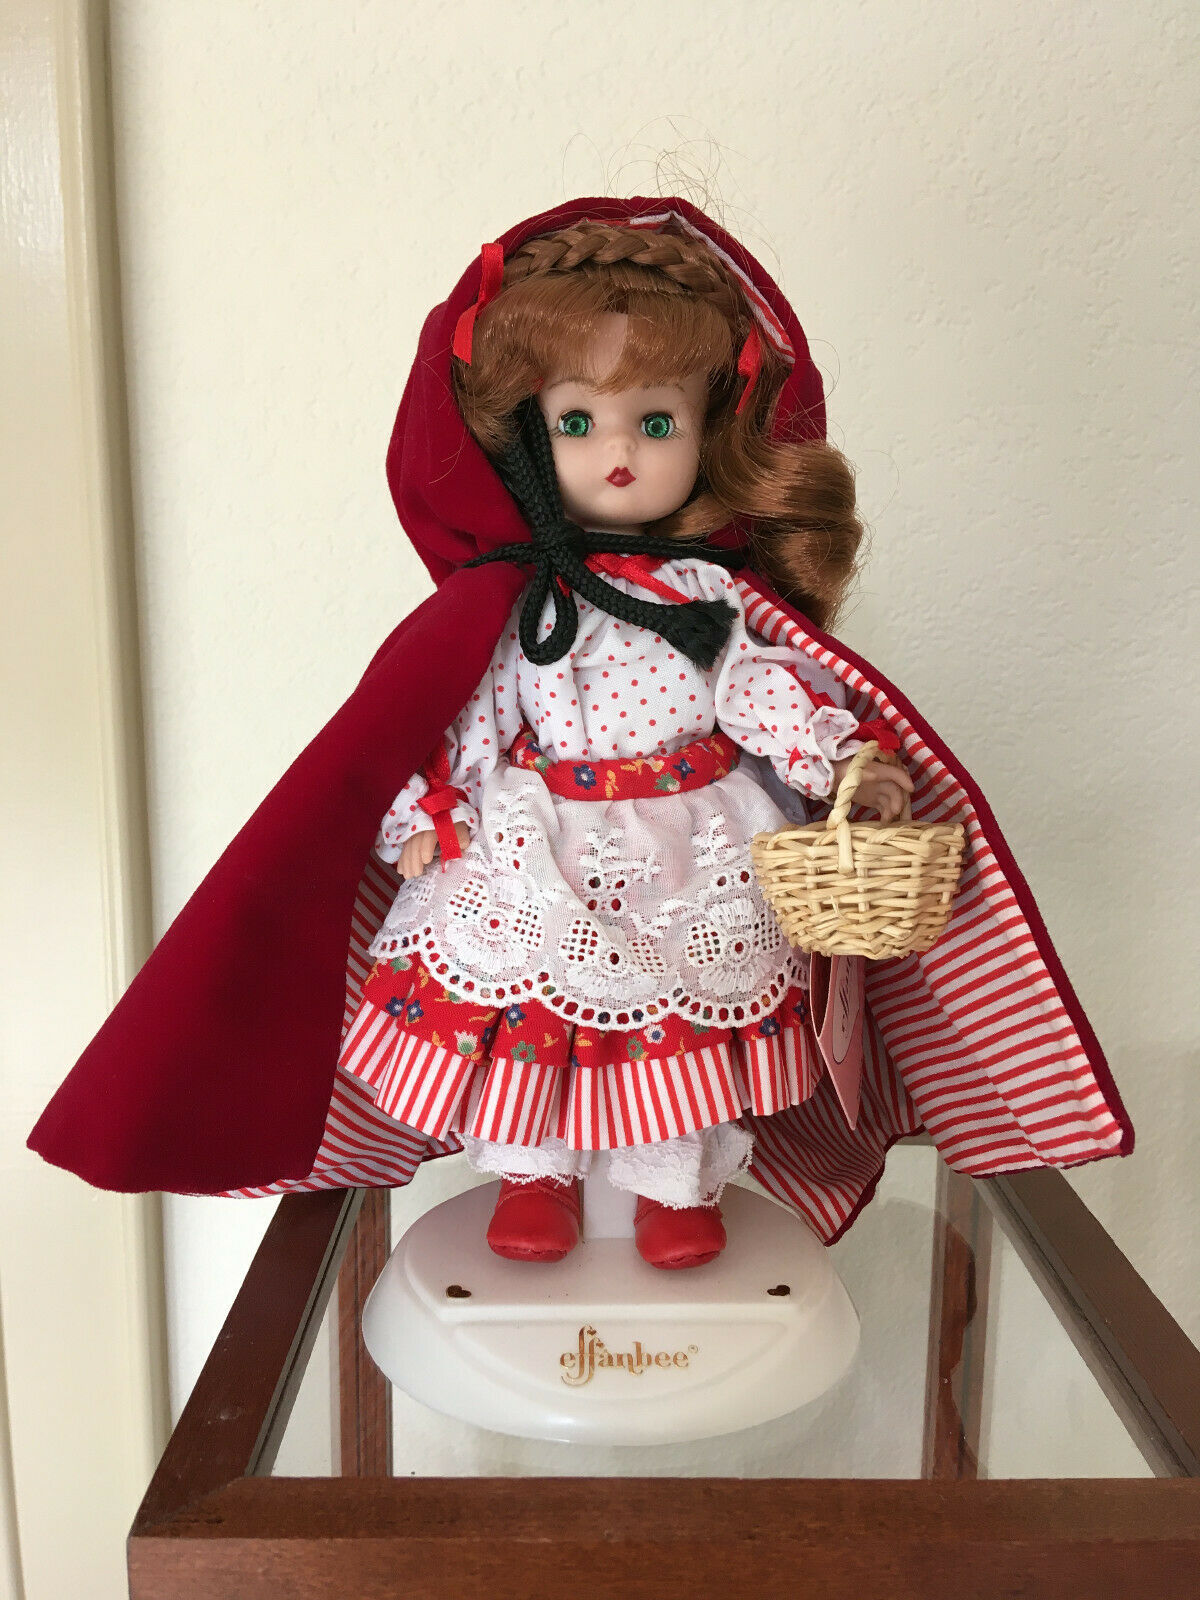 Effanbee Story Book Series Red Ridinghood MV103 - $38.00